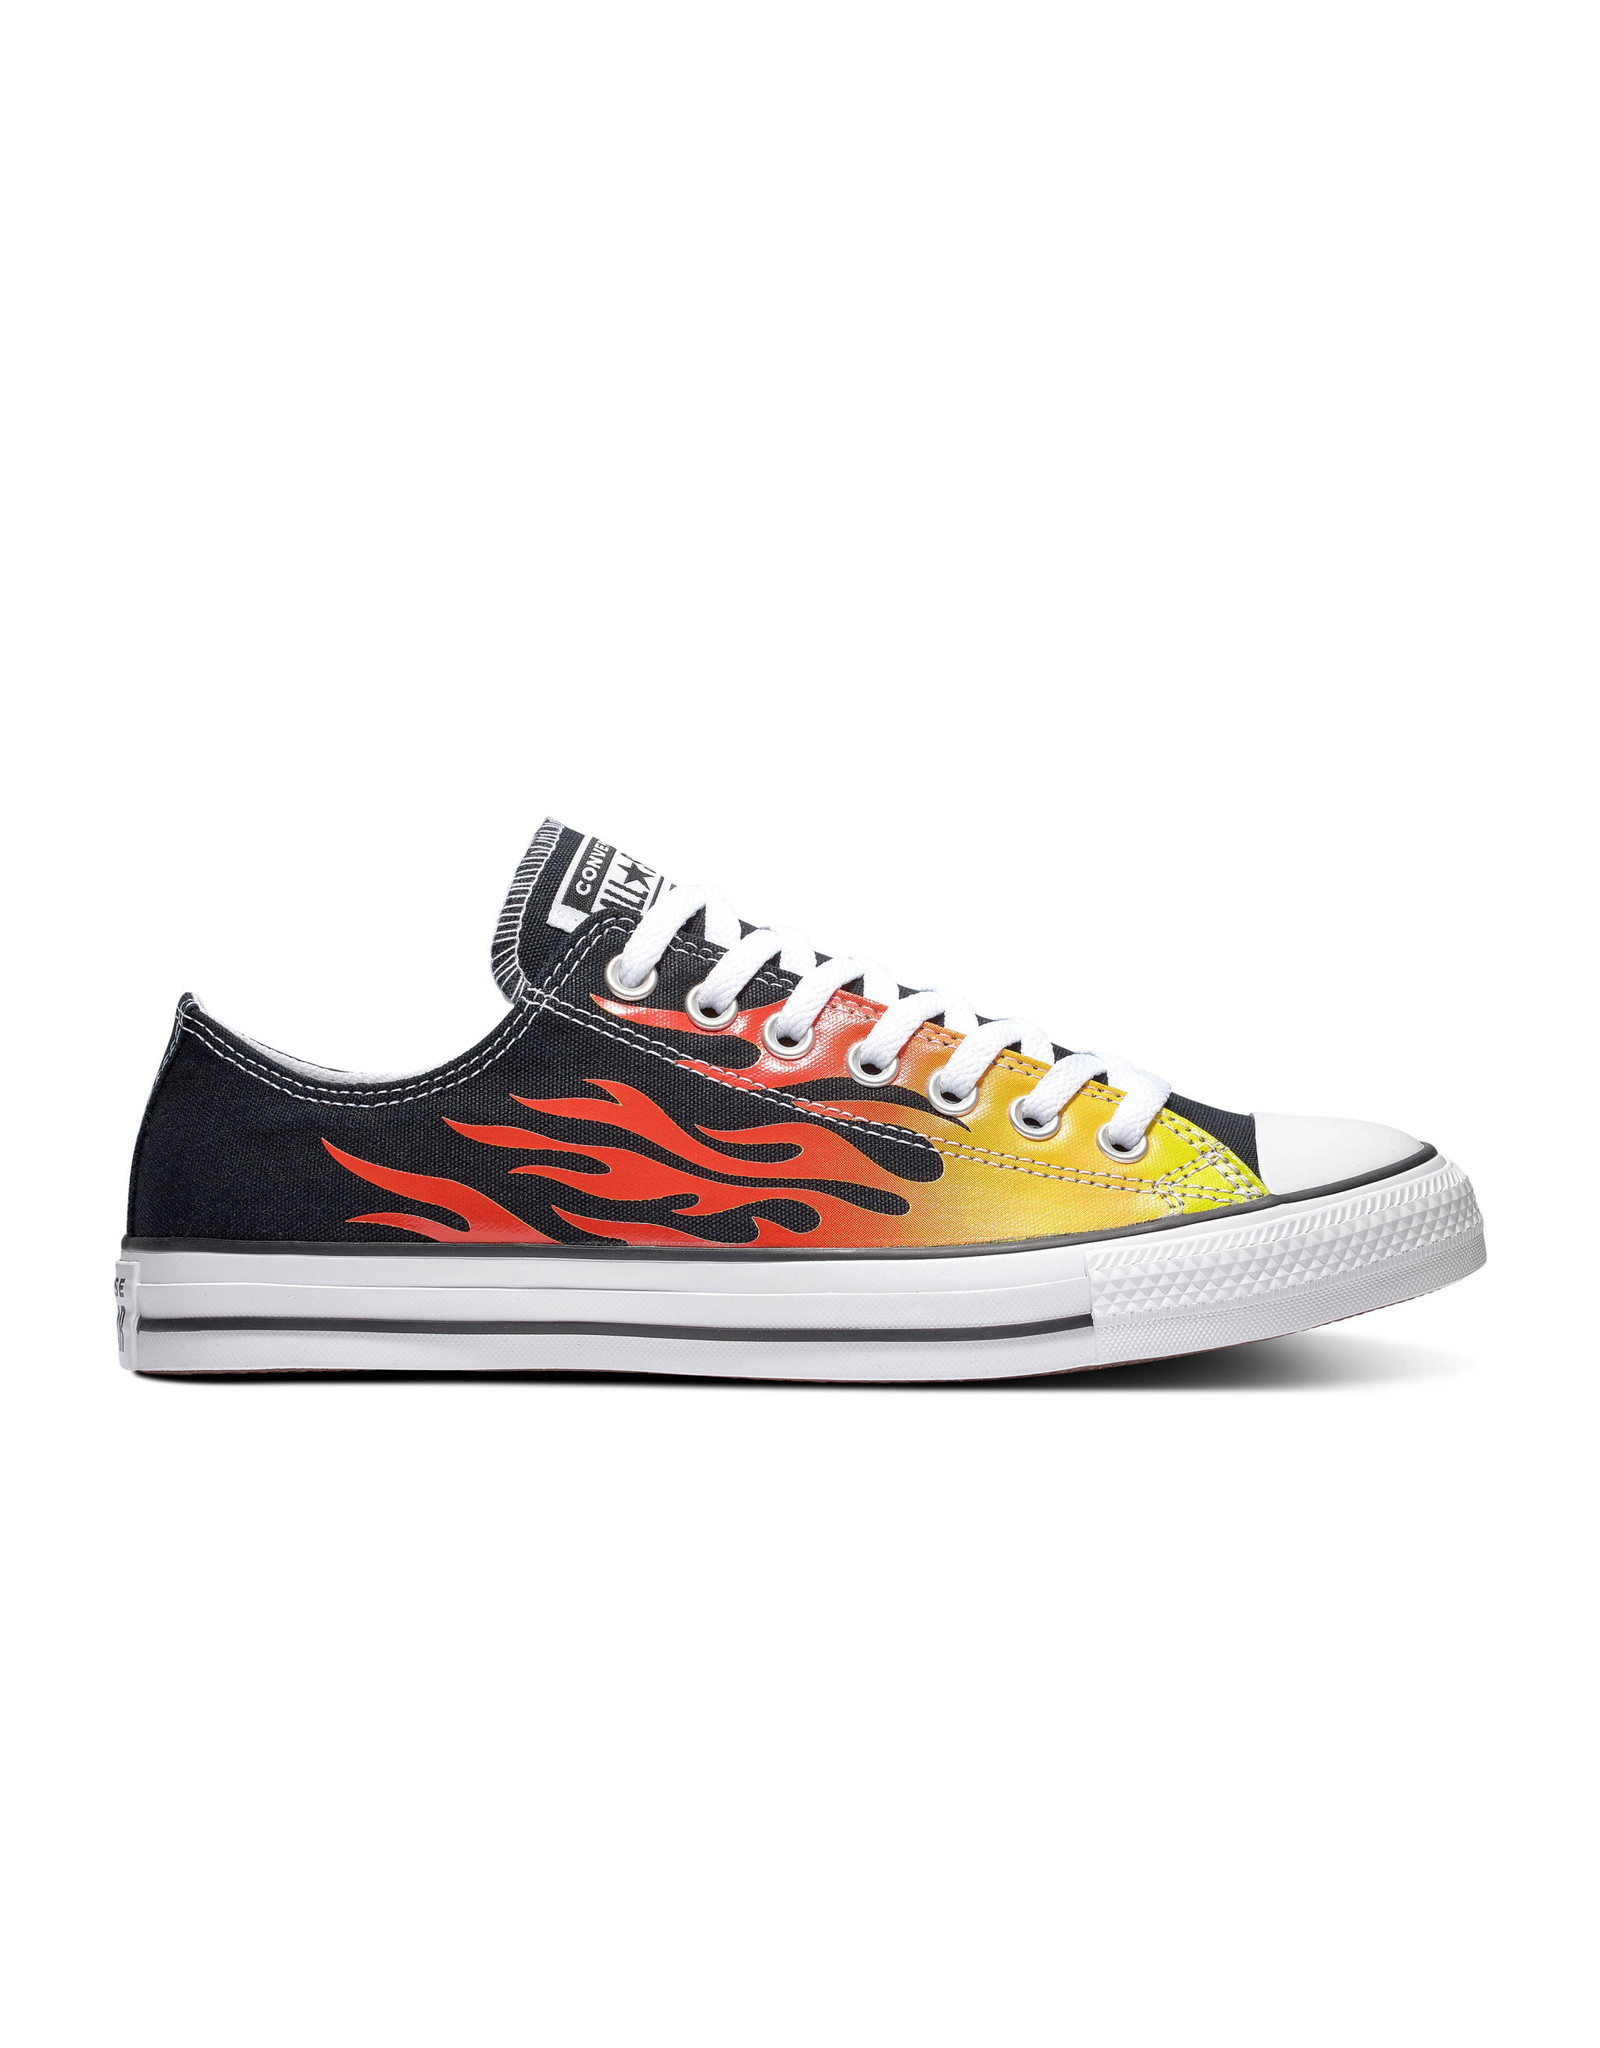 CONVERSE CHUCK TAYLOR ALL STAR OX BLACK/ENAMEL RED/FRESH YELLOW C13FLAB-166259C